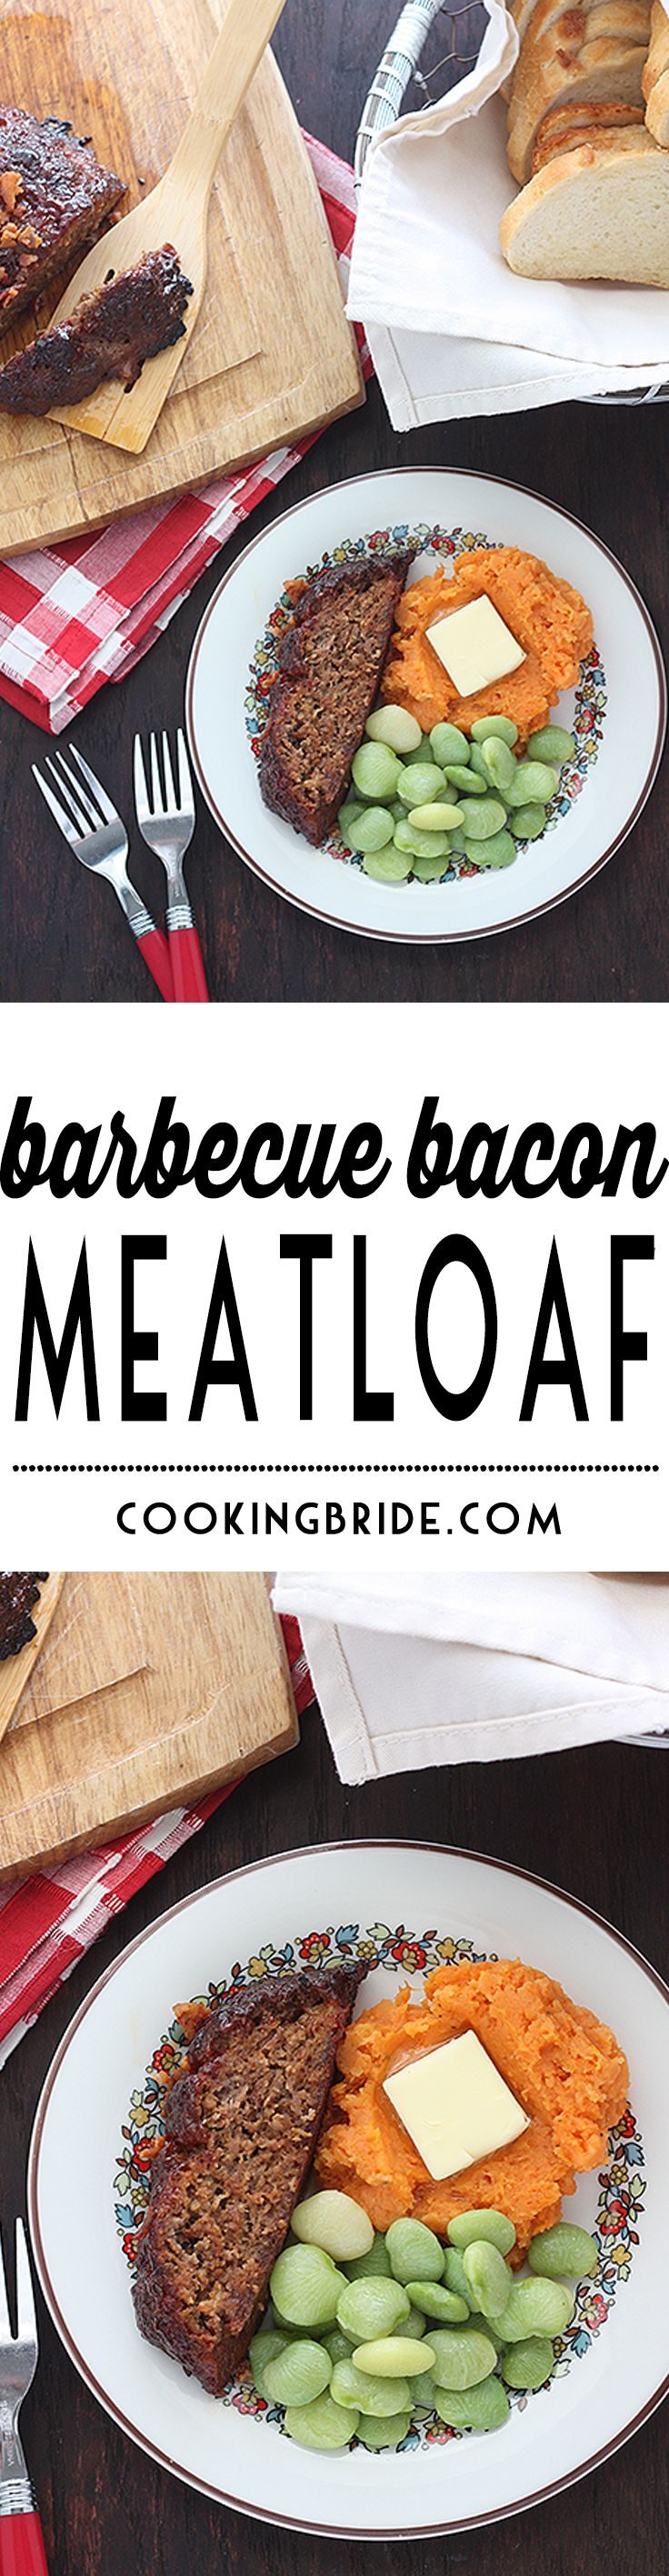 Bacon and spices are blended to form a paste that's mixed right into ground beef. This barbecue bacon meatloaf is then topped with homemade BBQ sauce.